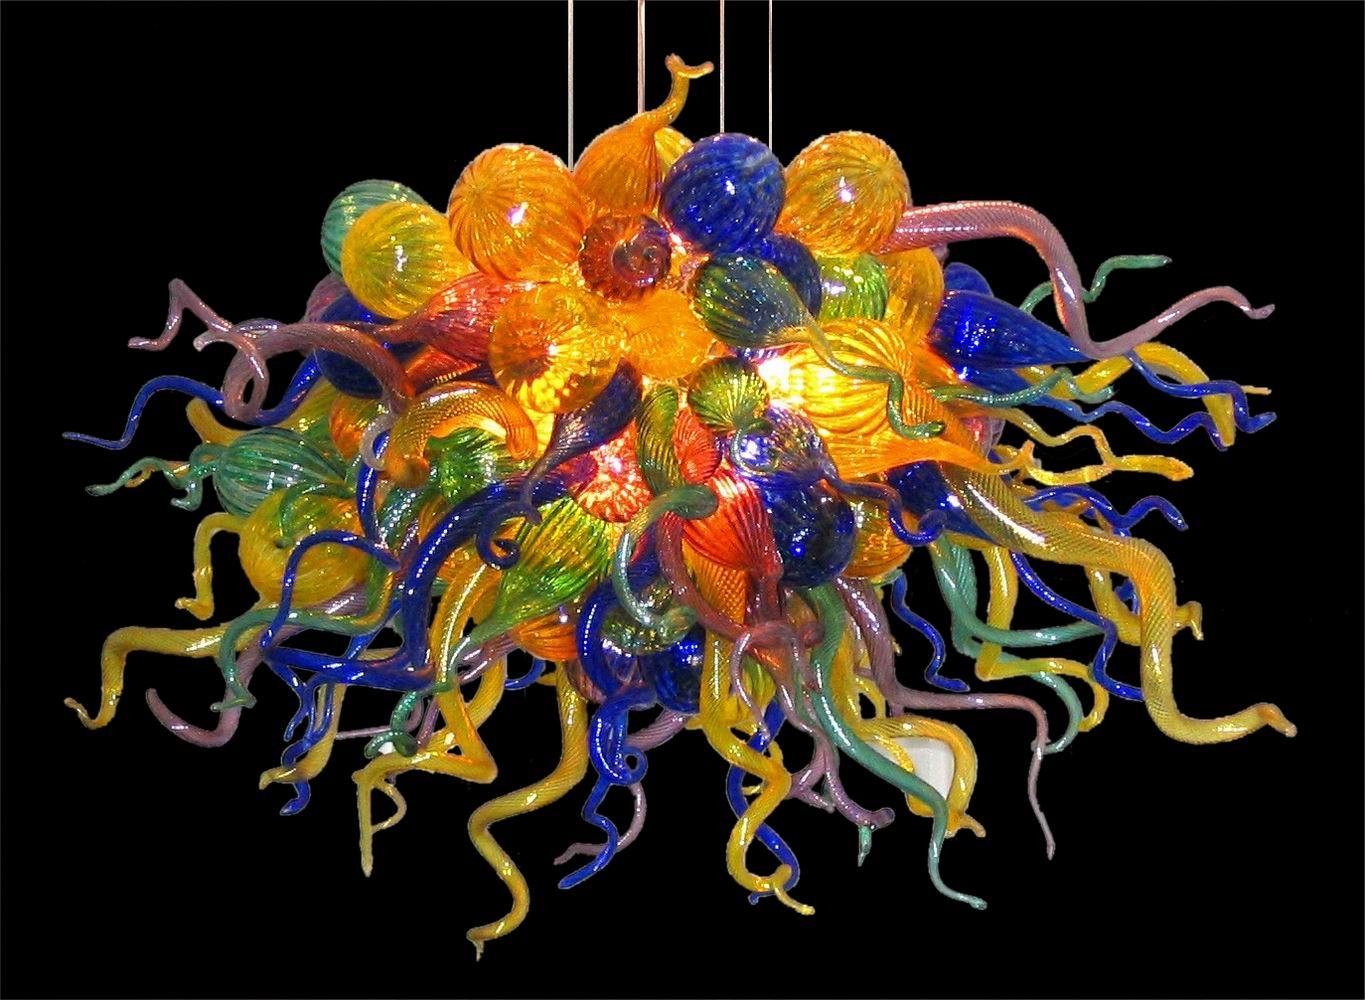 Chandelier Stunning Colored Chandelier Fascinating Colored Within Multi Colored Gypsy Chandeliers (Image 12 of 25)